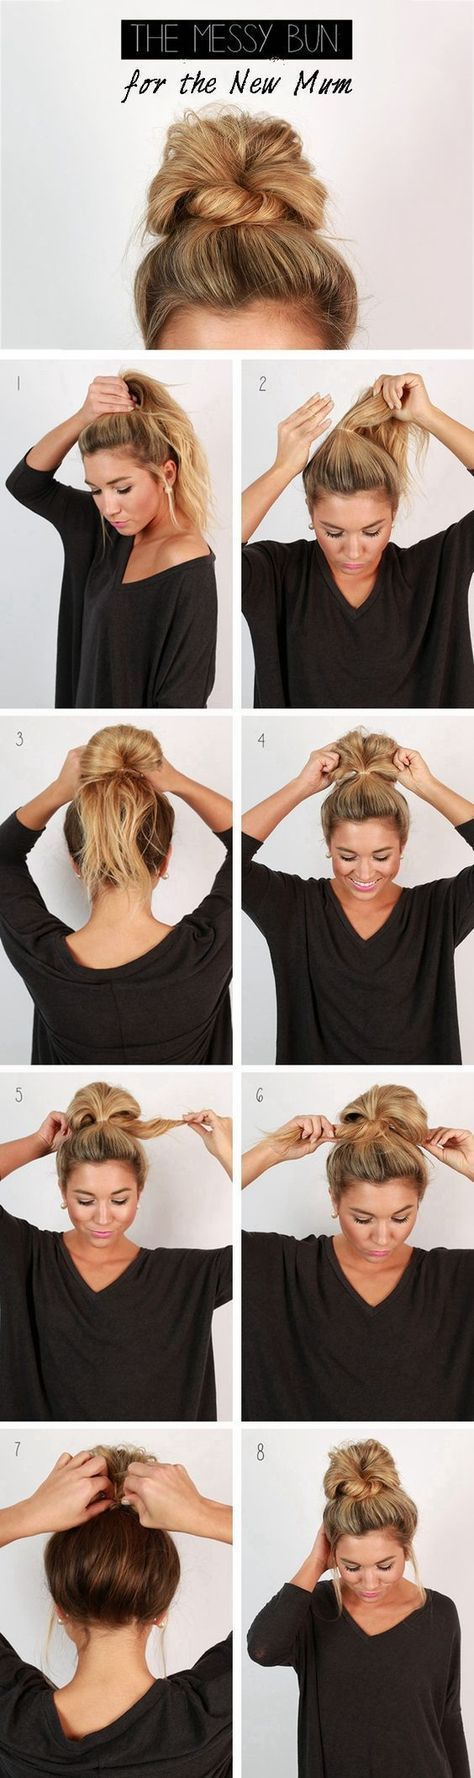 10 Hairstyles You Can Make in Less Than 2 Mins - Best 25+ Fast Hairstyles Ideas Only On Pinterest Fast Easy